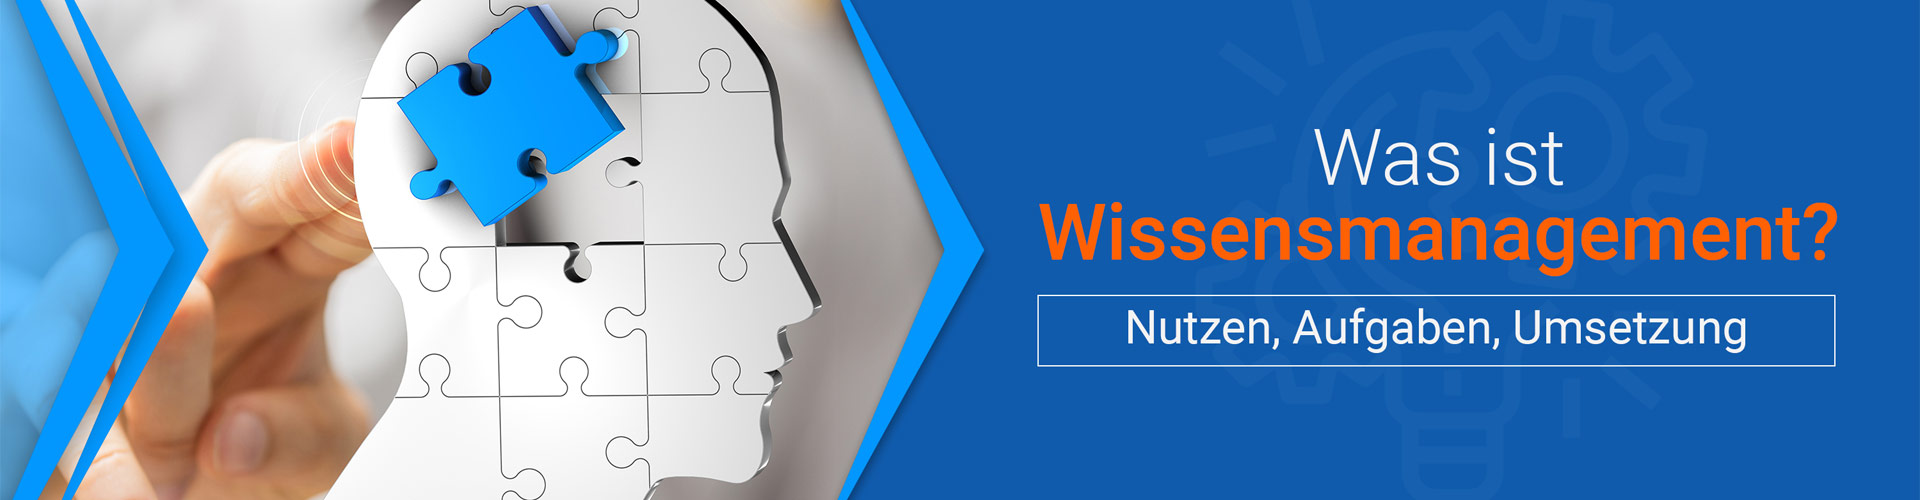 was-ist-wissensmanagement-innolytics